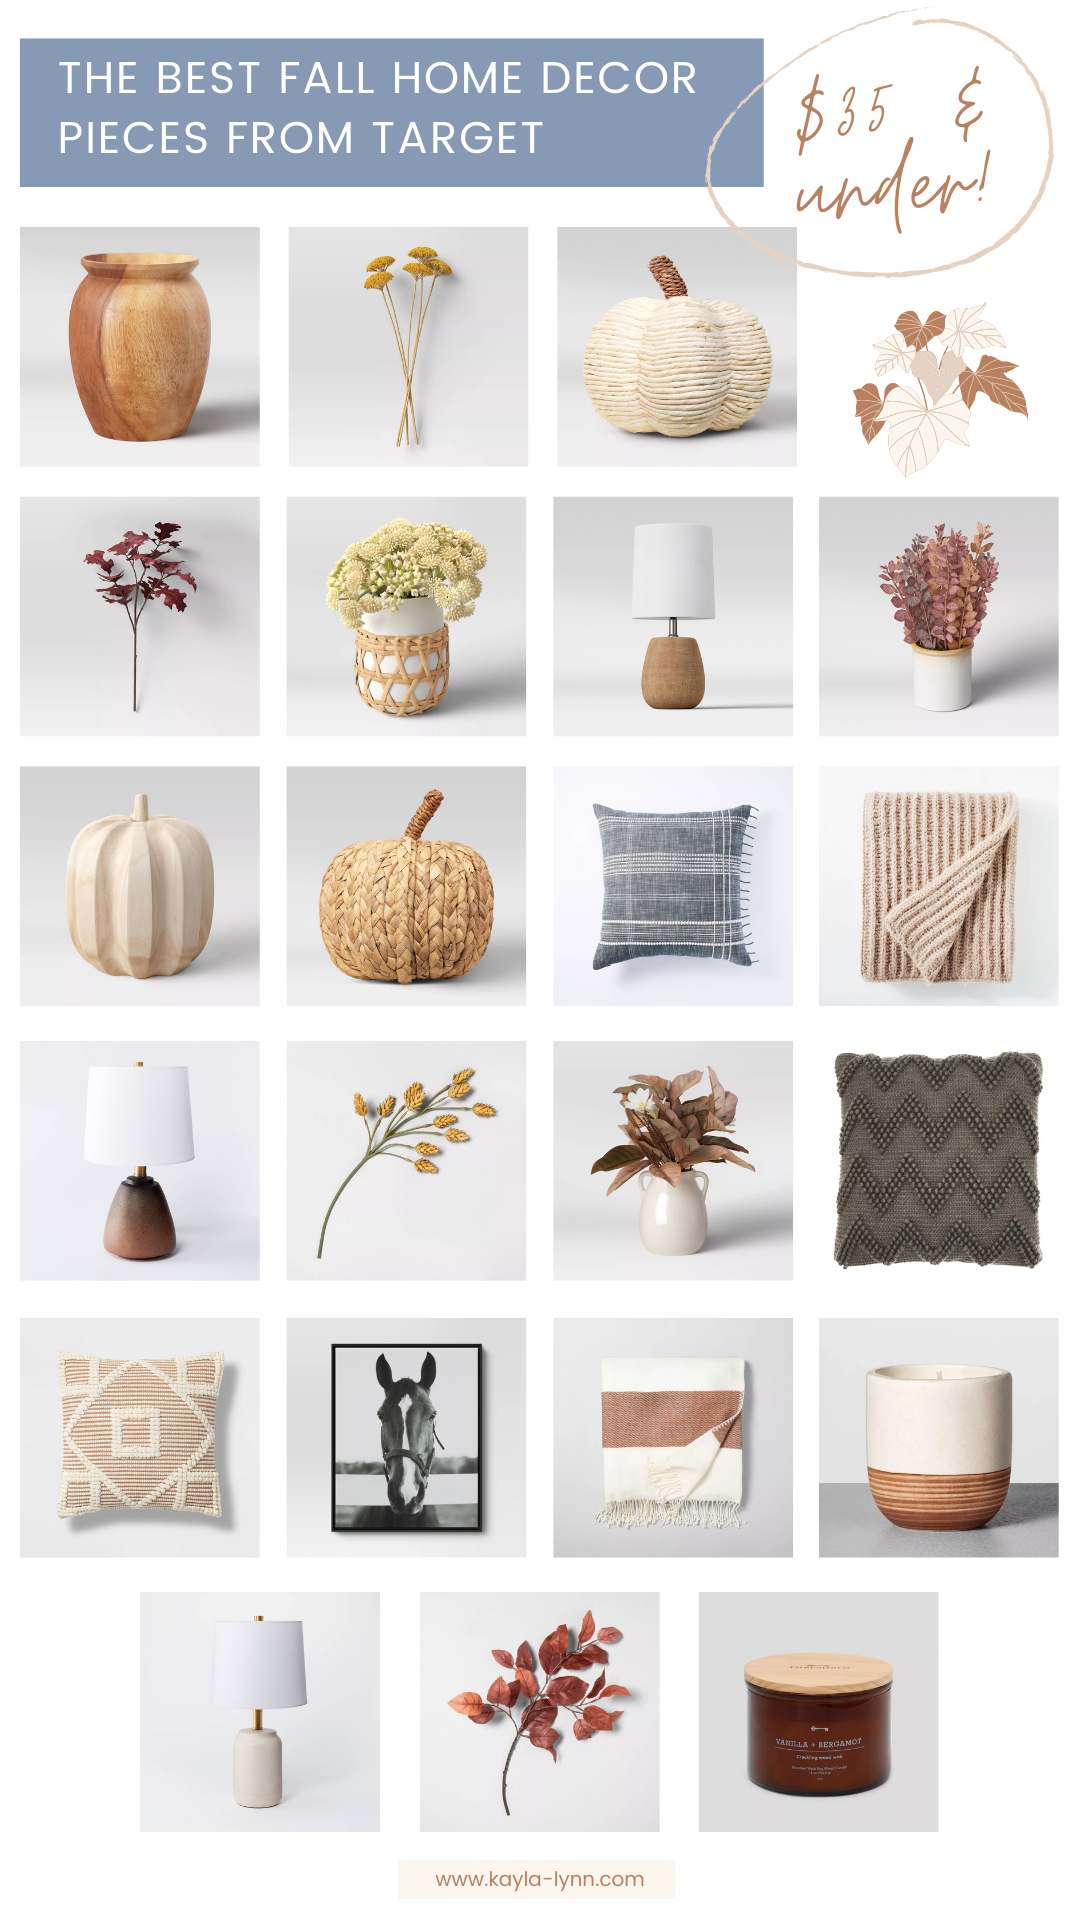 The Best Fall Home Decor Pieces From Target